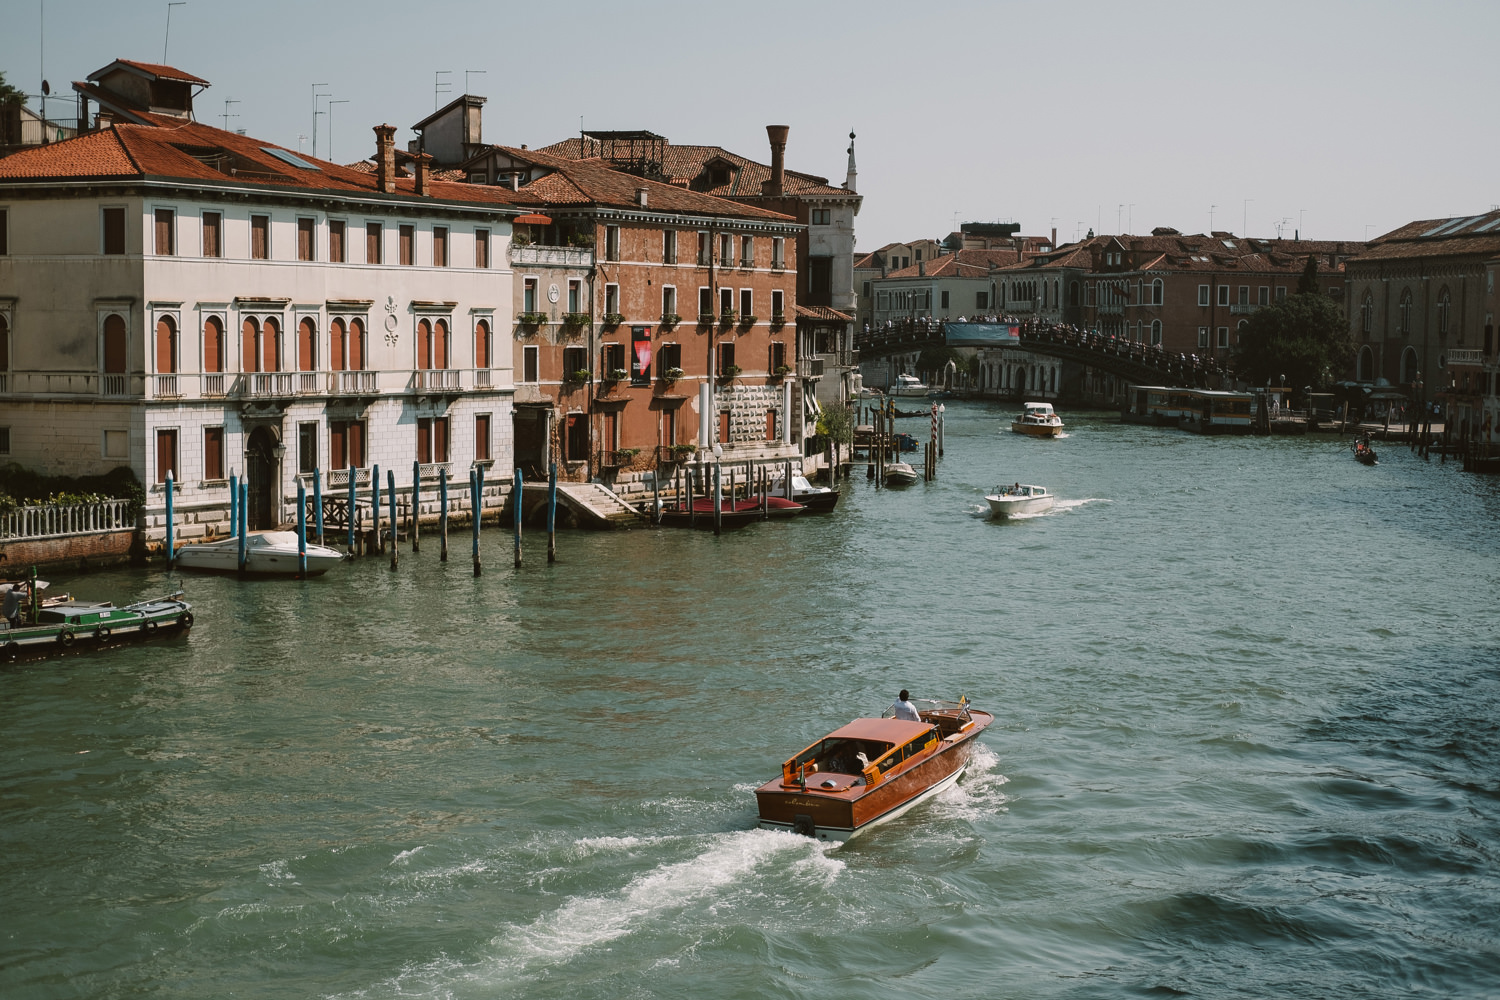 watertaxi on venice waterway